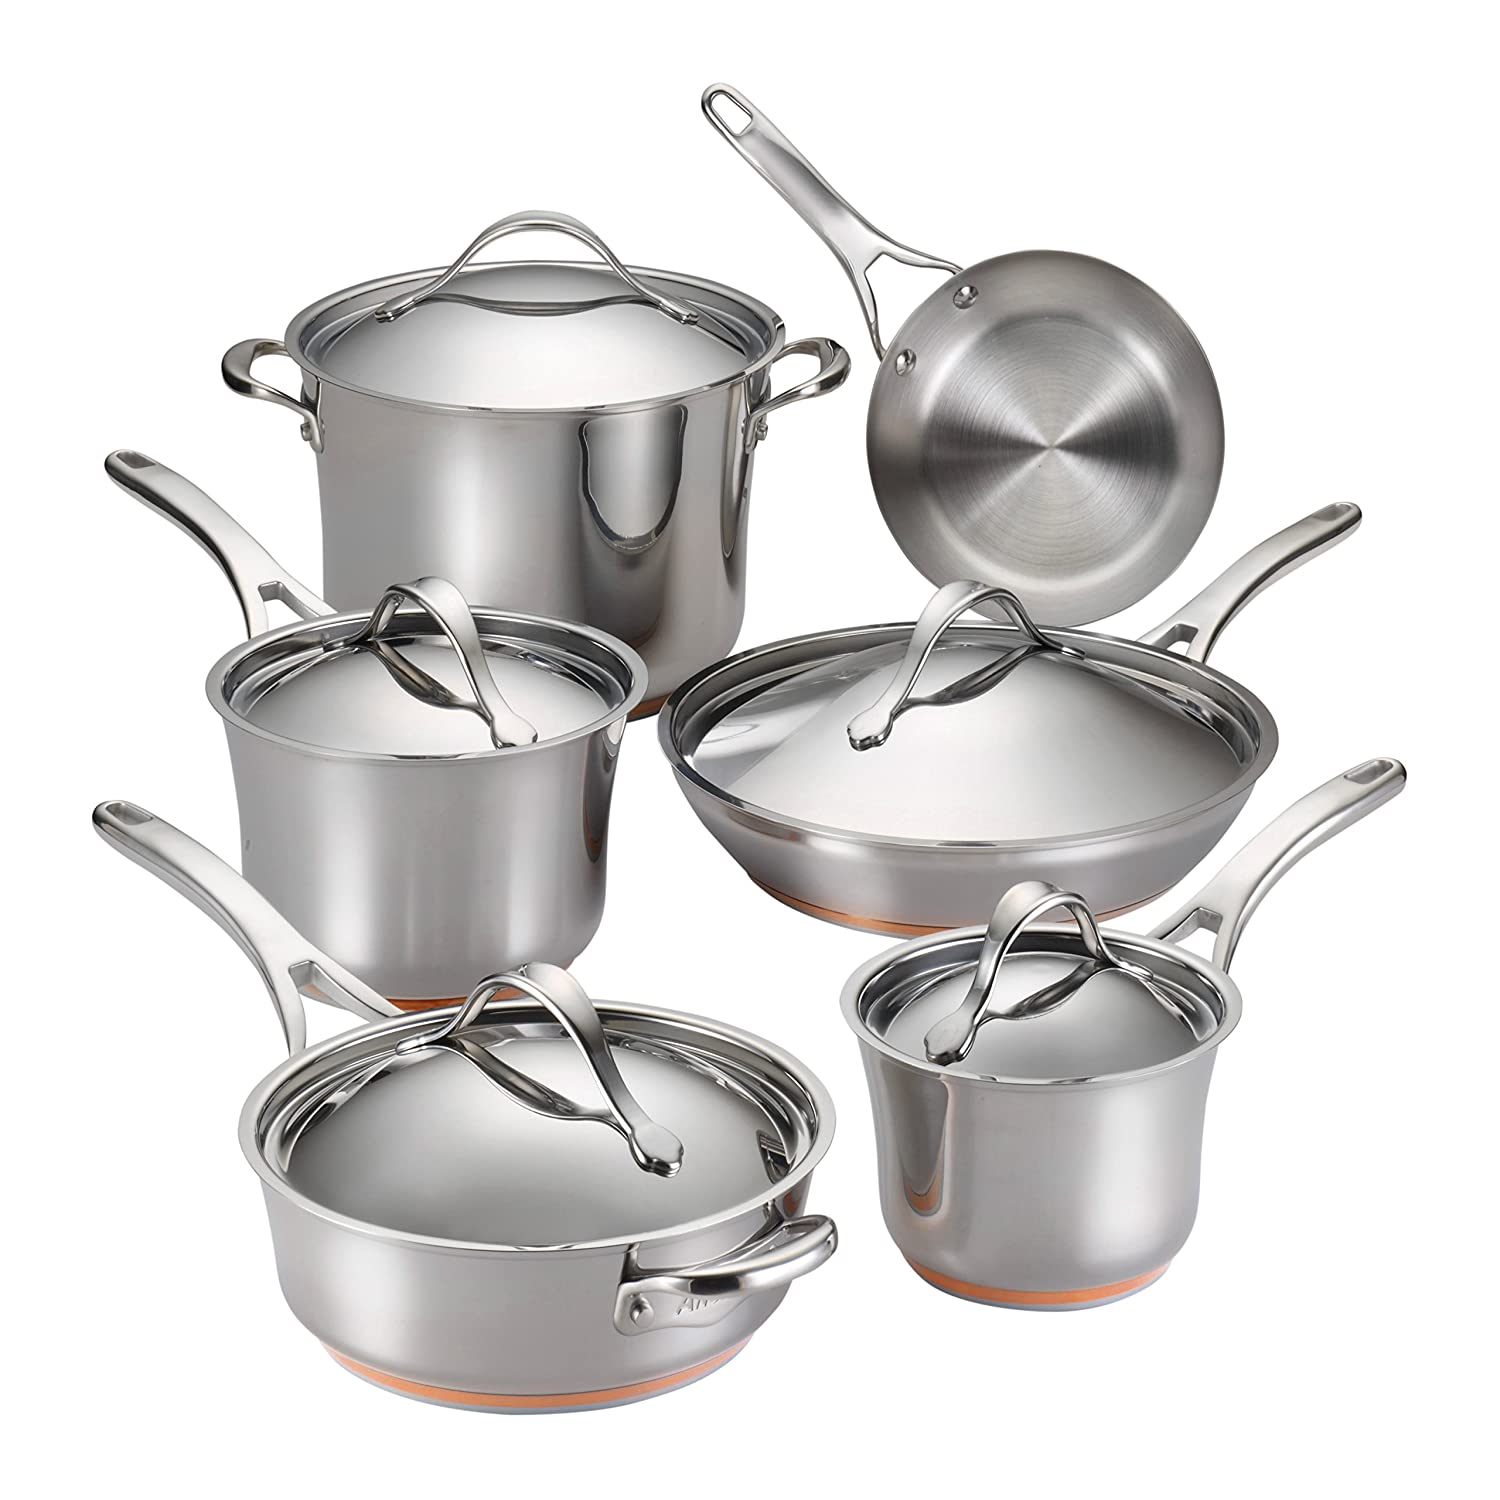 Amazon.com: Anolon 11-Piece Nouvelle Copper Stainless Steel ...